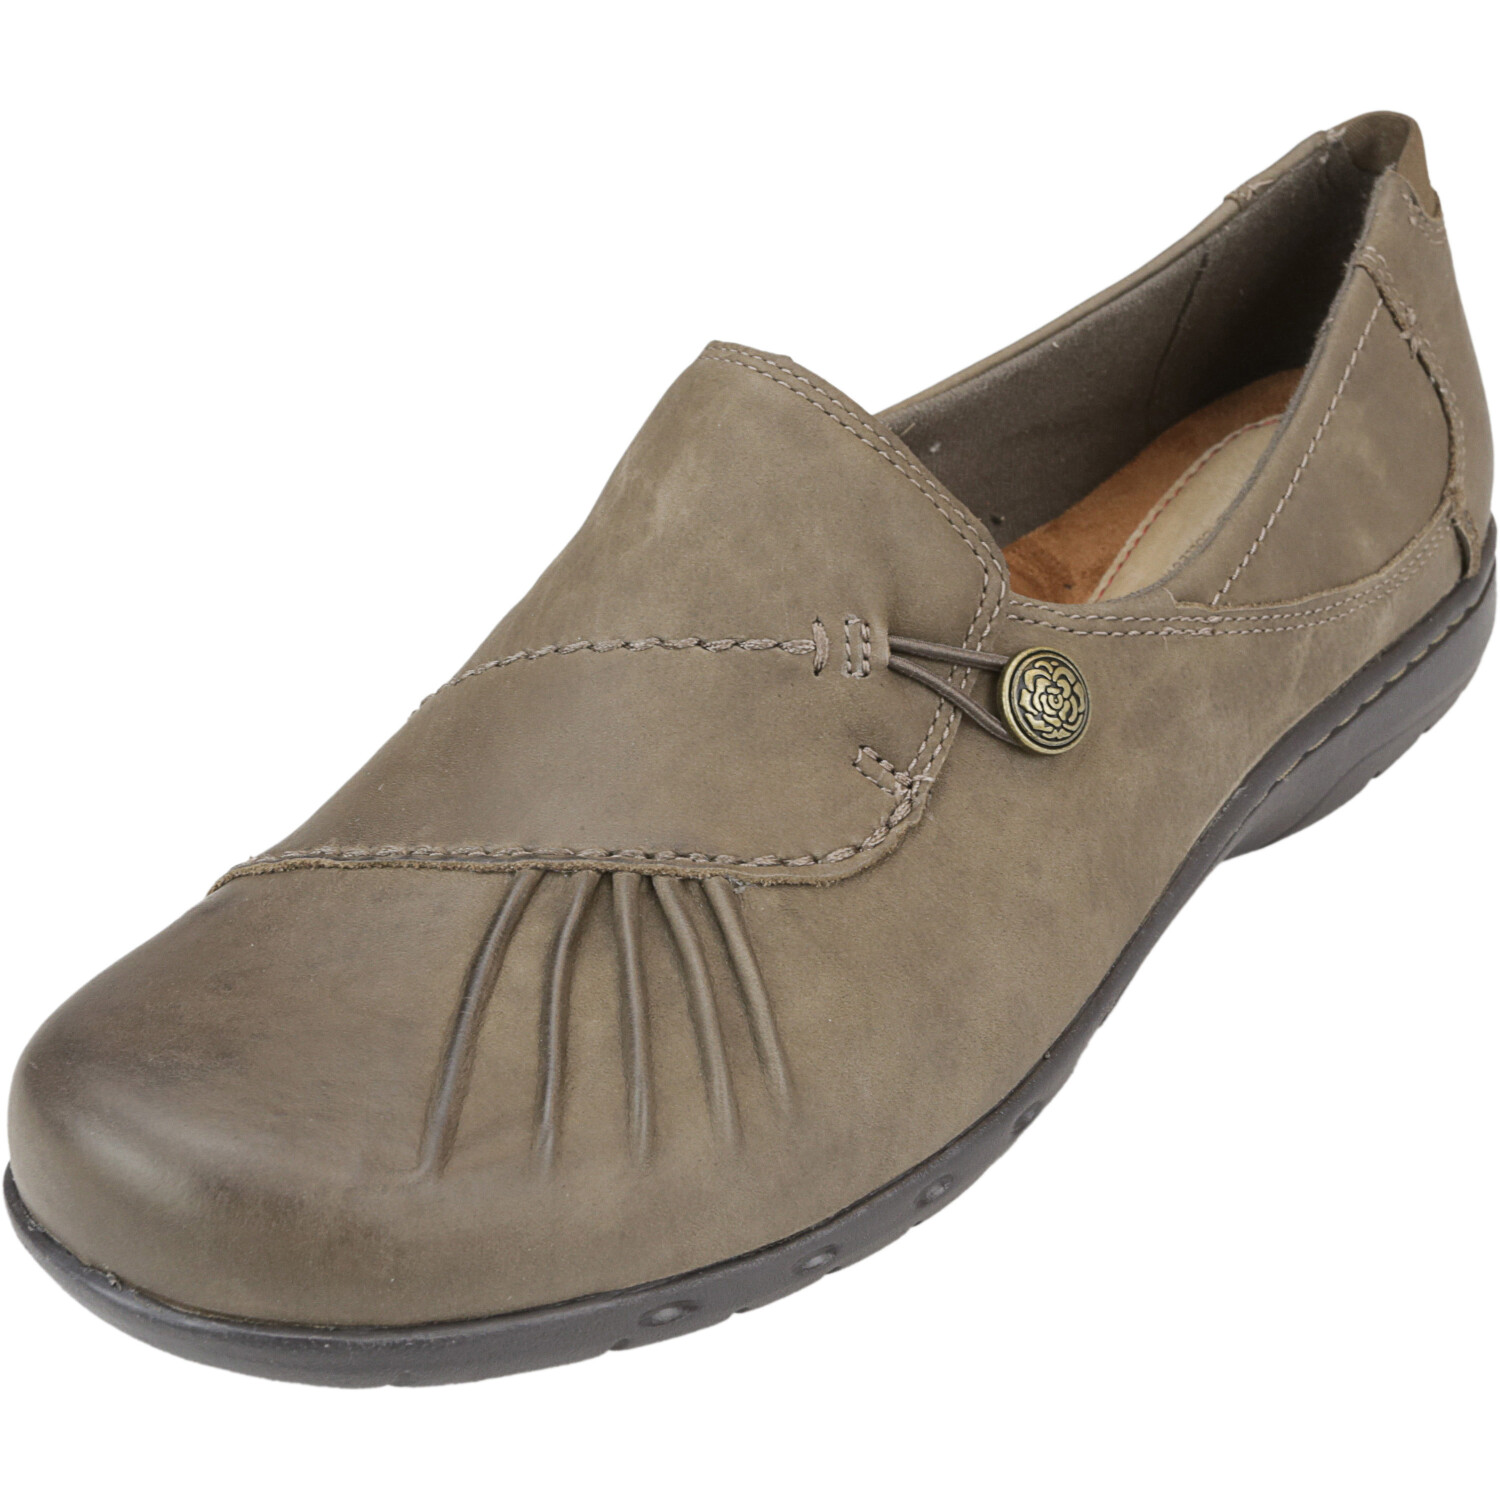 Rockport Women's Cobb Hill Paulette Stone Ankle-High Leather Slip-On Shoes - 11W